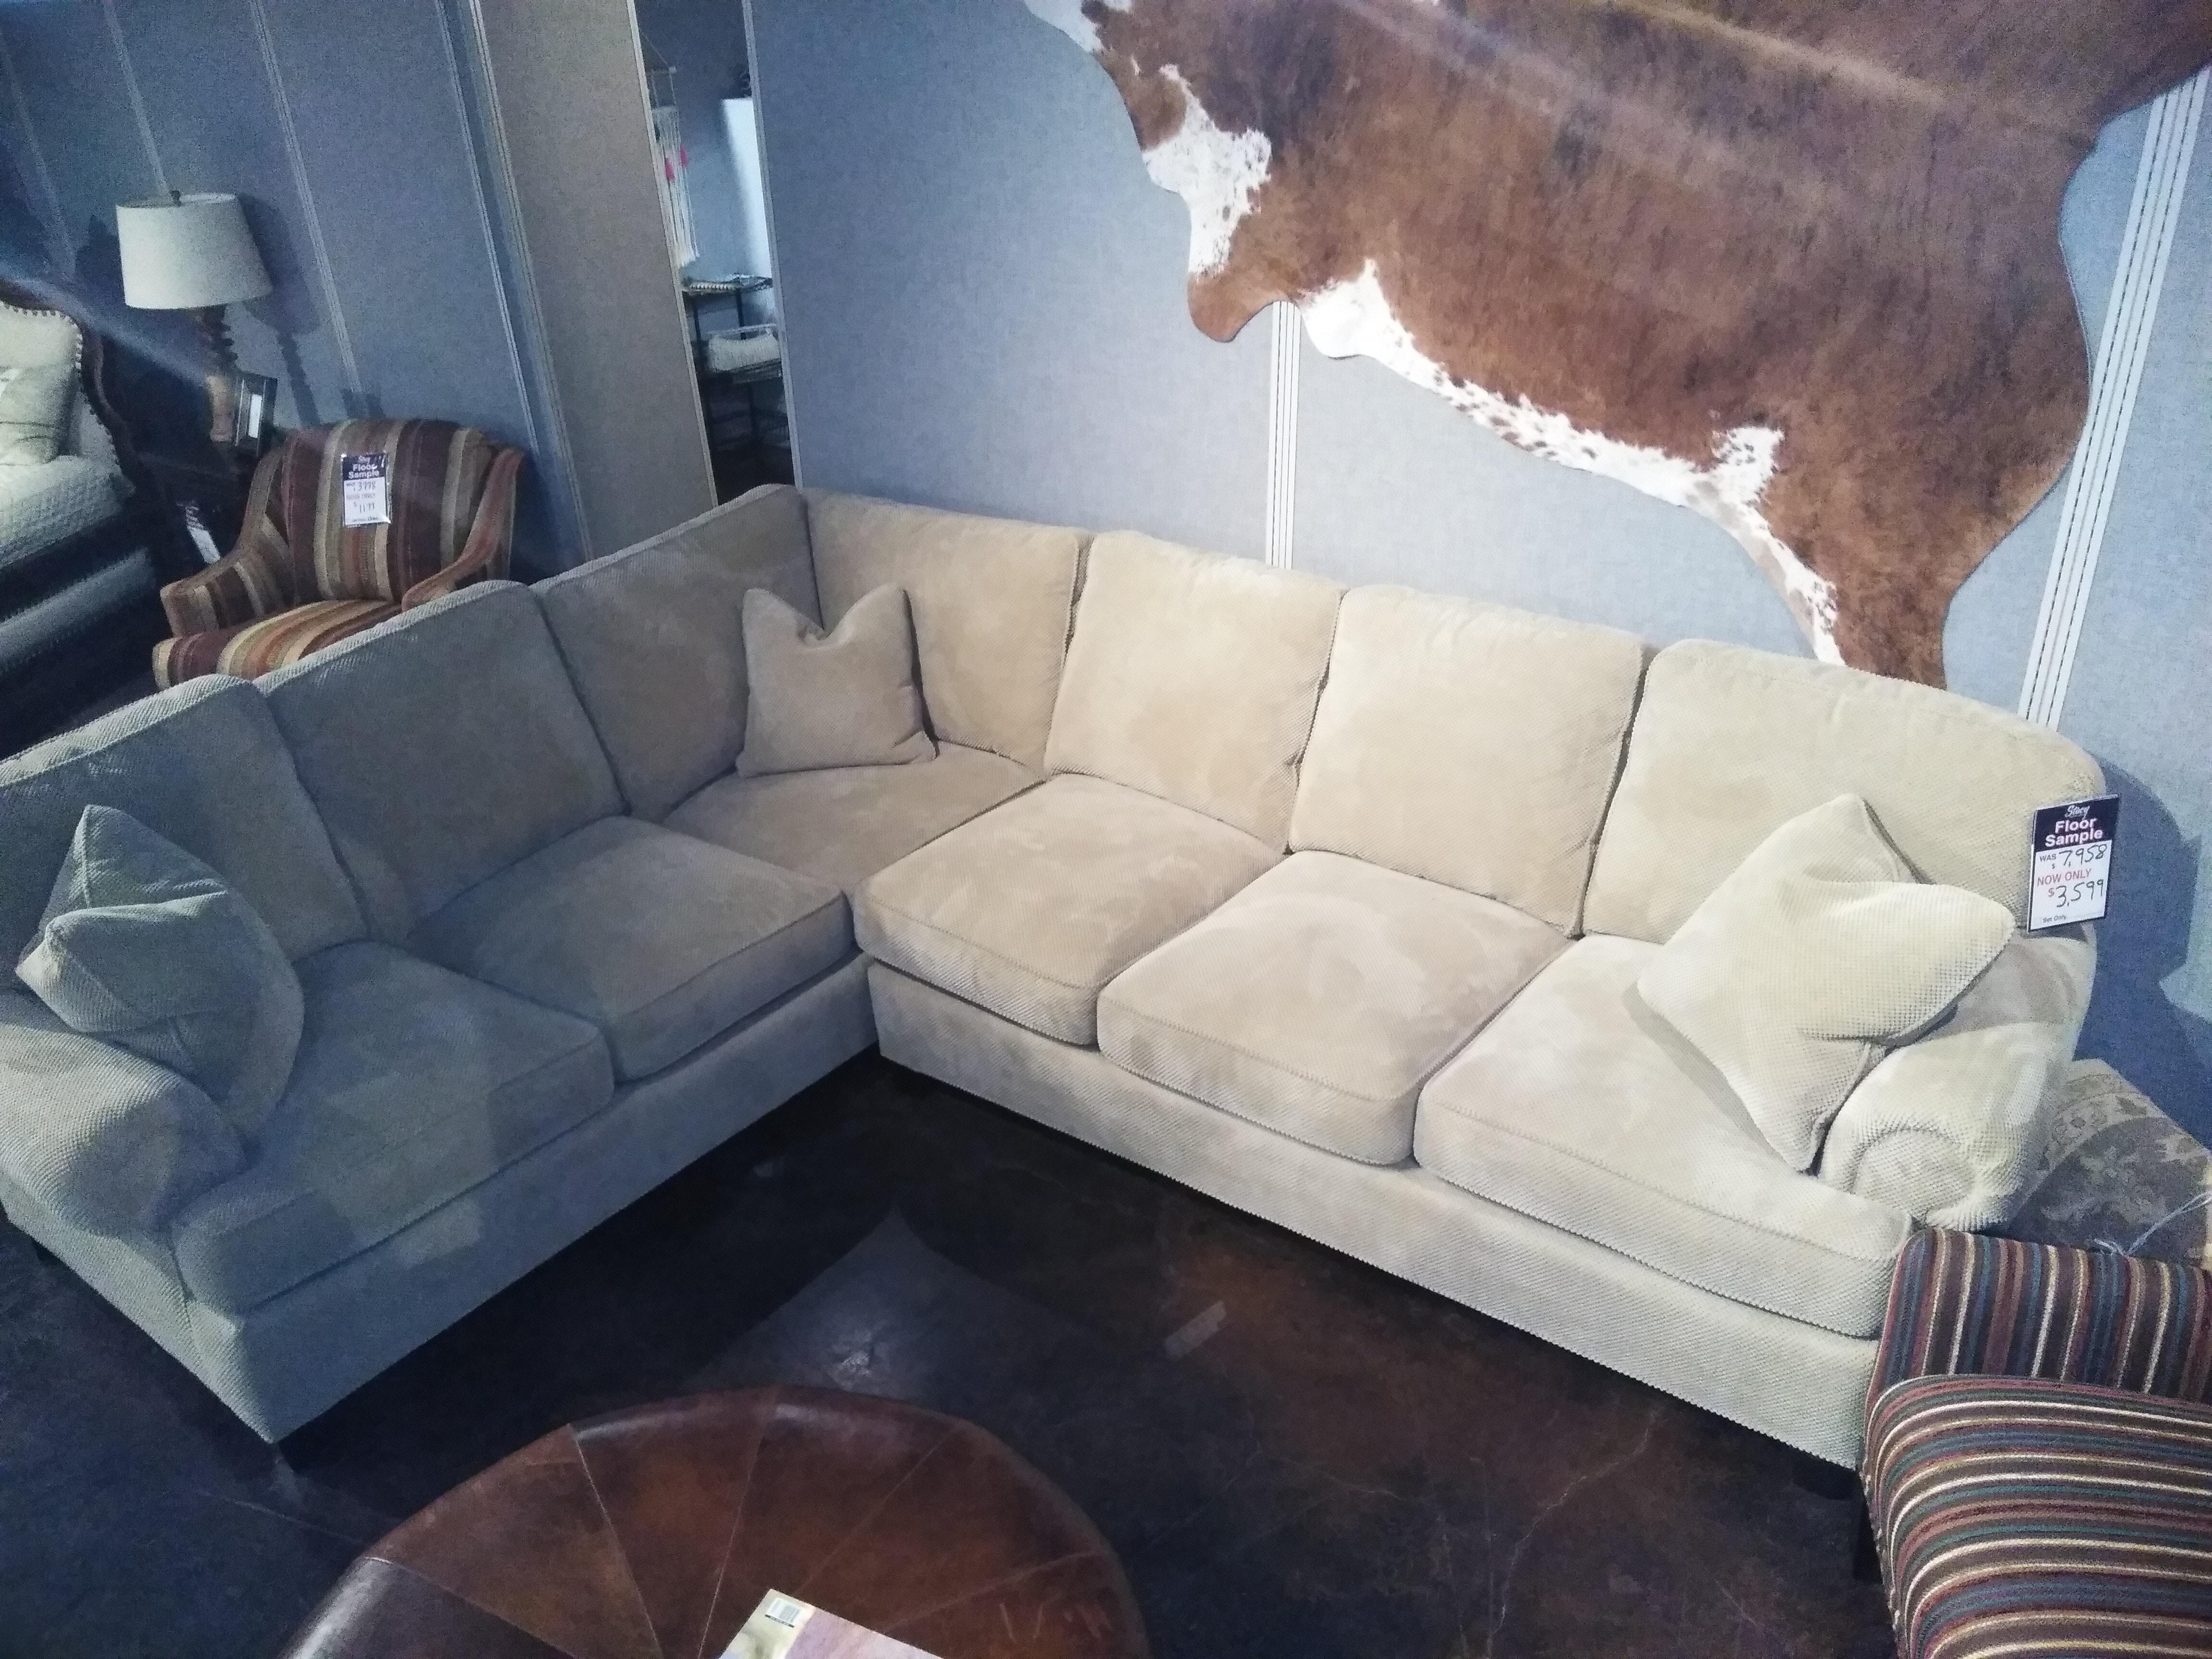 8 way hand tied sofa brands in canada slipcovers for beds uk clearance furniture stacy grapevine allen and plano sectional sect 986